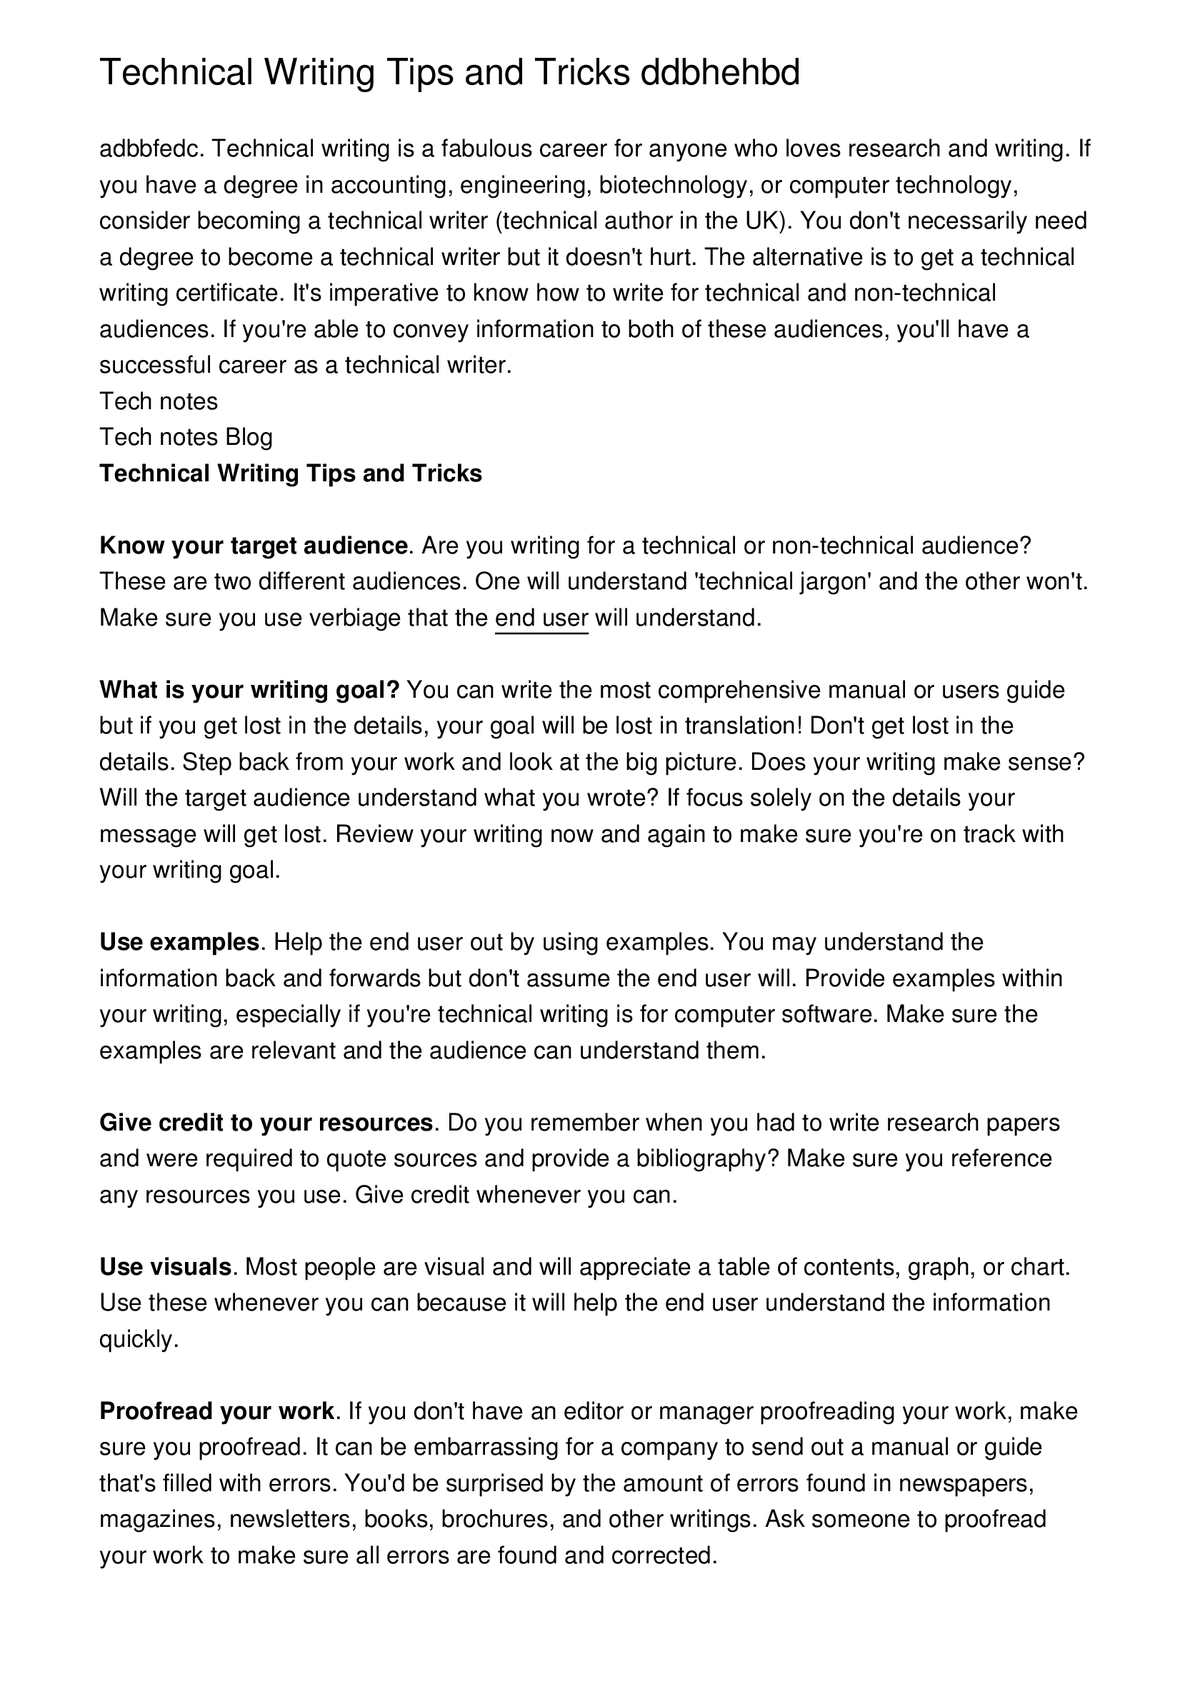 Writing Guide Calaméo Technical Writing Tips And Tricks Ddbhehbd